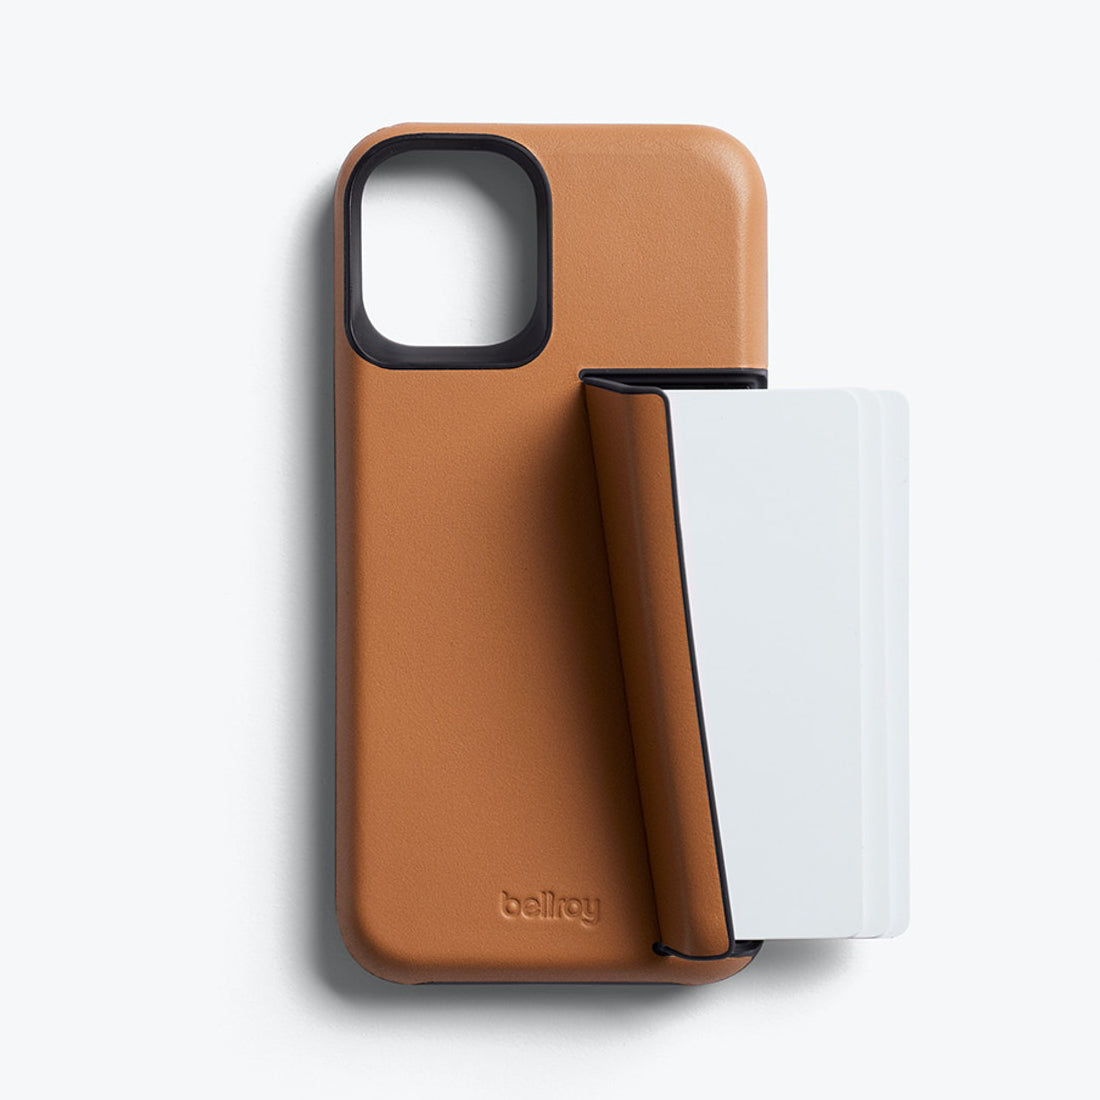 Bellroy 3-Card Genuine Leather Wallet Case For iPhone iPhone 12 mini - TOFFEE